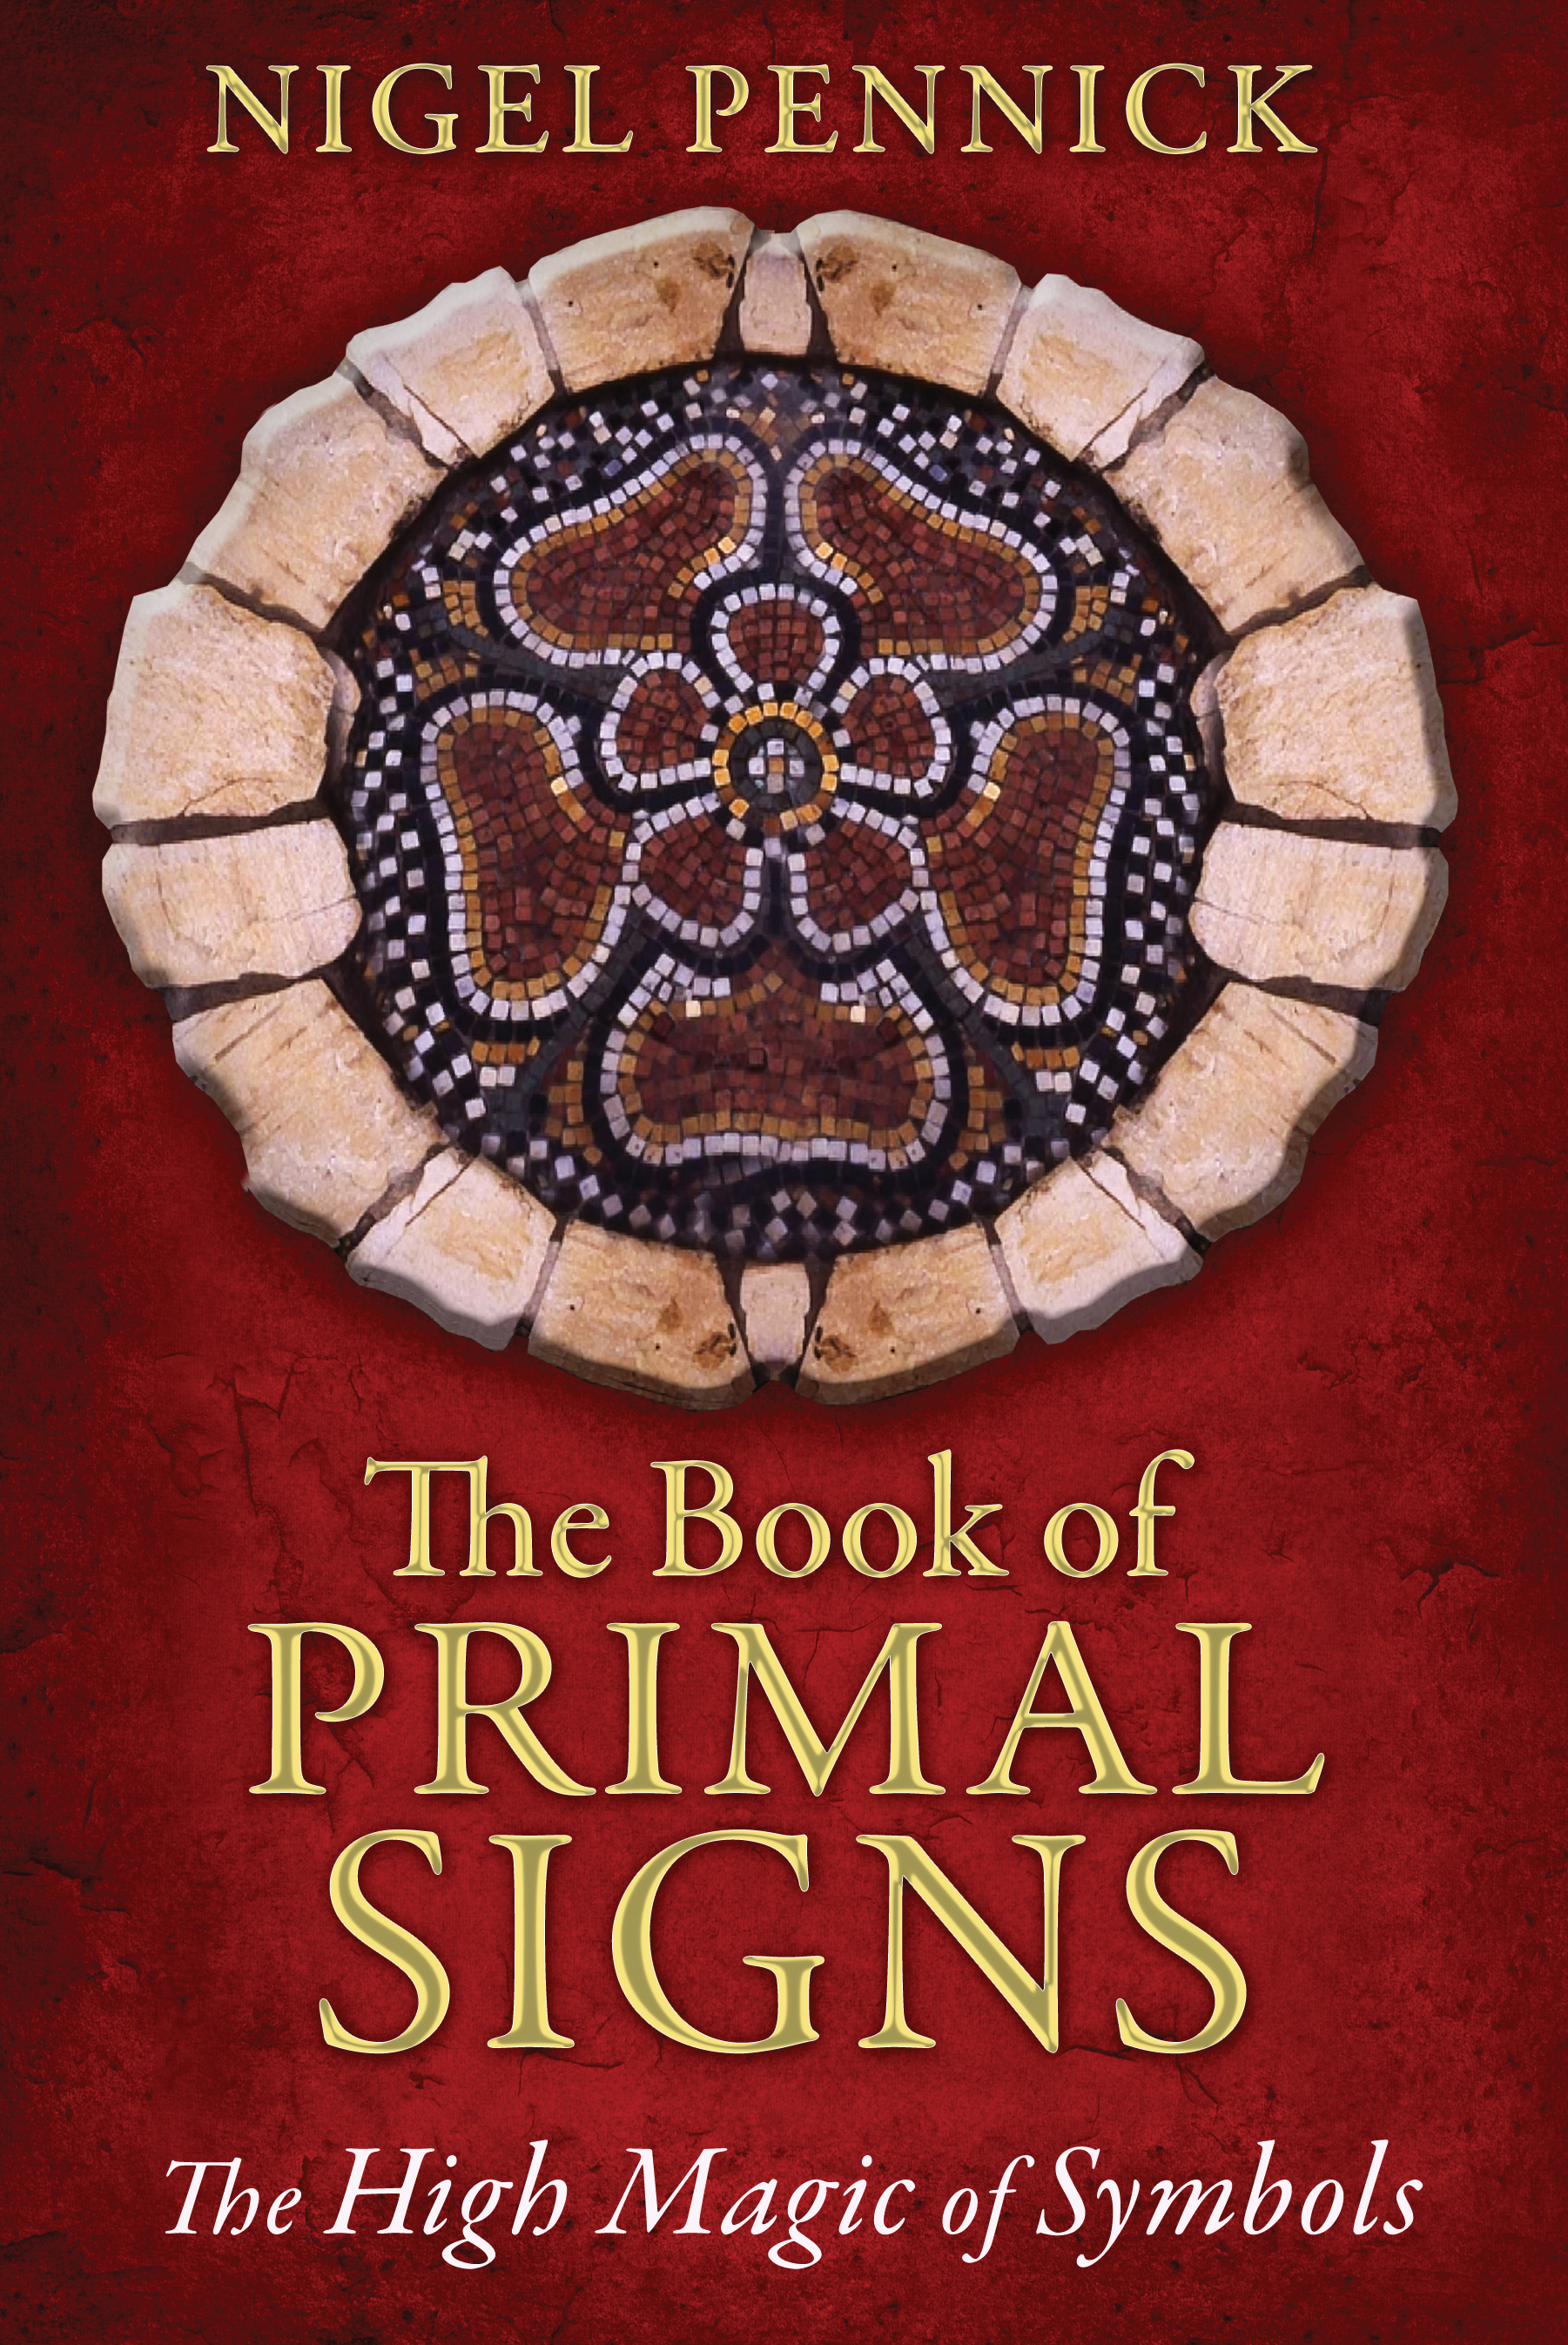 Book-of-primal-signs-9781620553152_hr